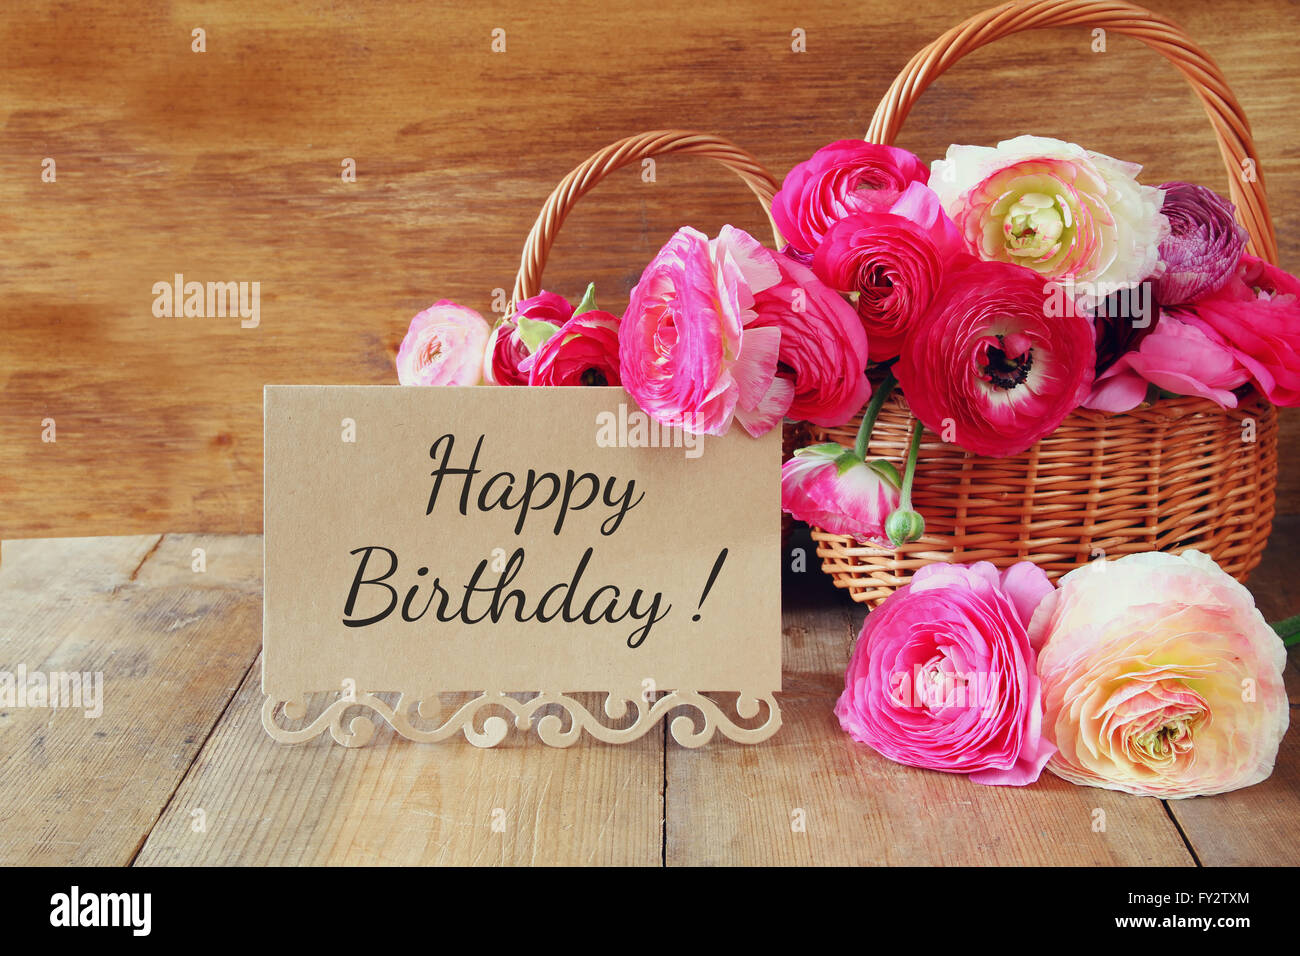 Happy birthday spring flowers stock photos happy birthday spring pink flowers in the basket next to card with phrase happy birthday on wooden izmirmasajfo